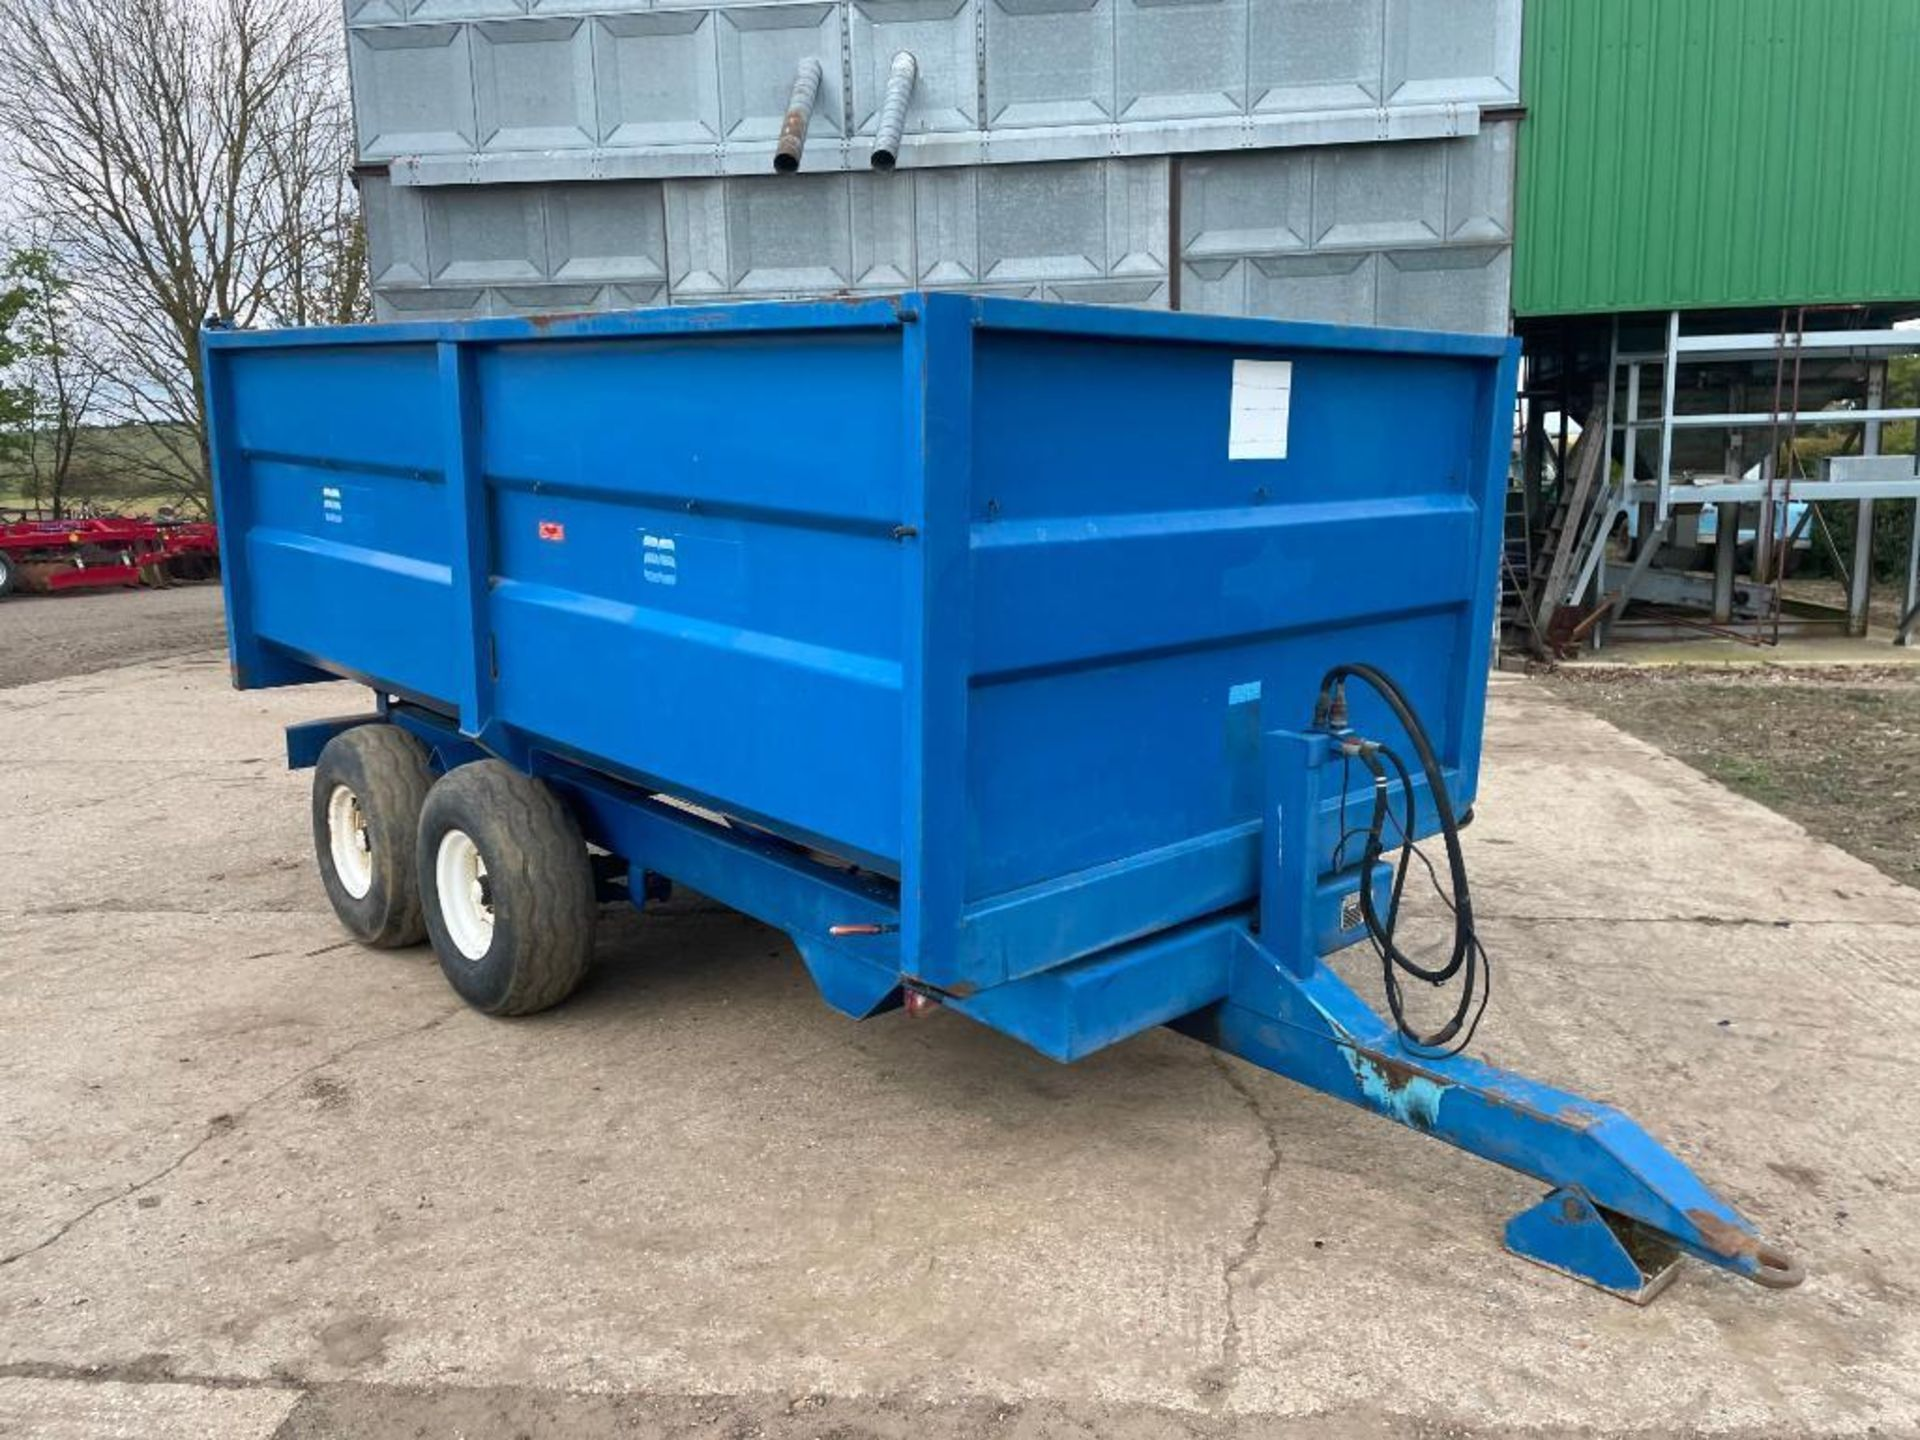 1986 AS Marston 8t twin axle grain trailer, manual tailgate and grain chute on 11.5/80-15.3 wheels a - Image 13 of 15